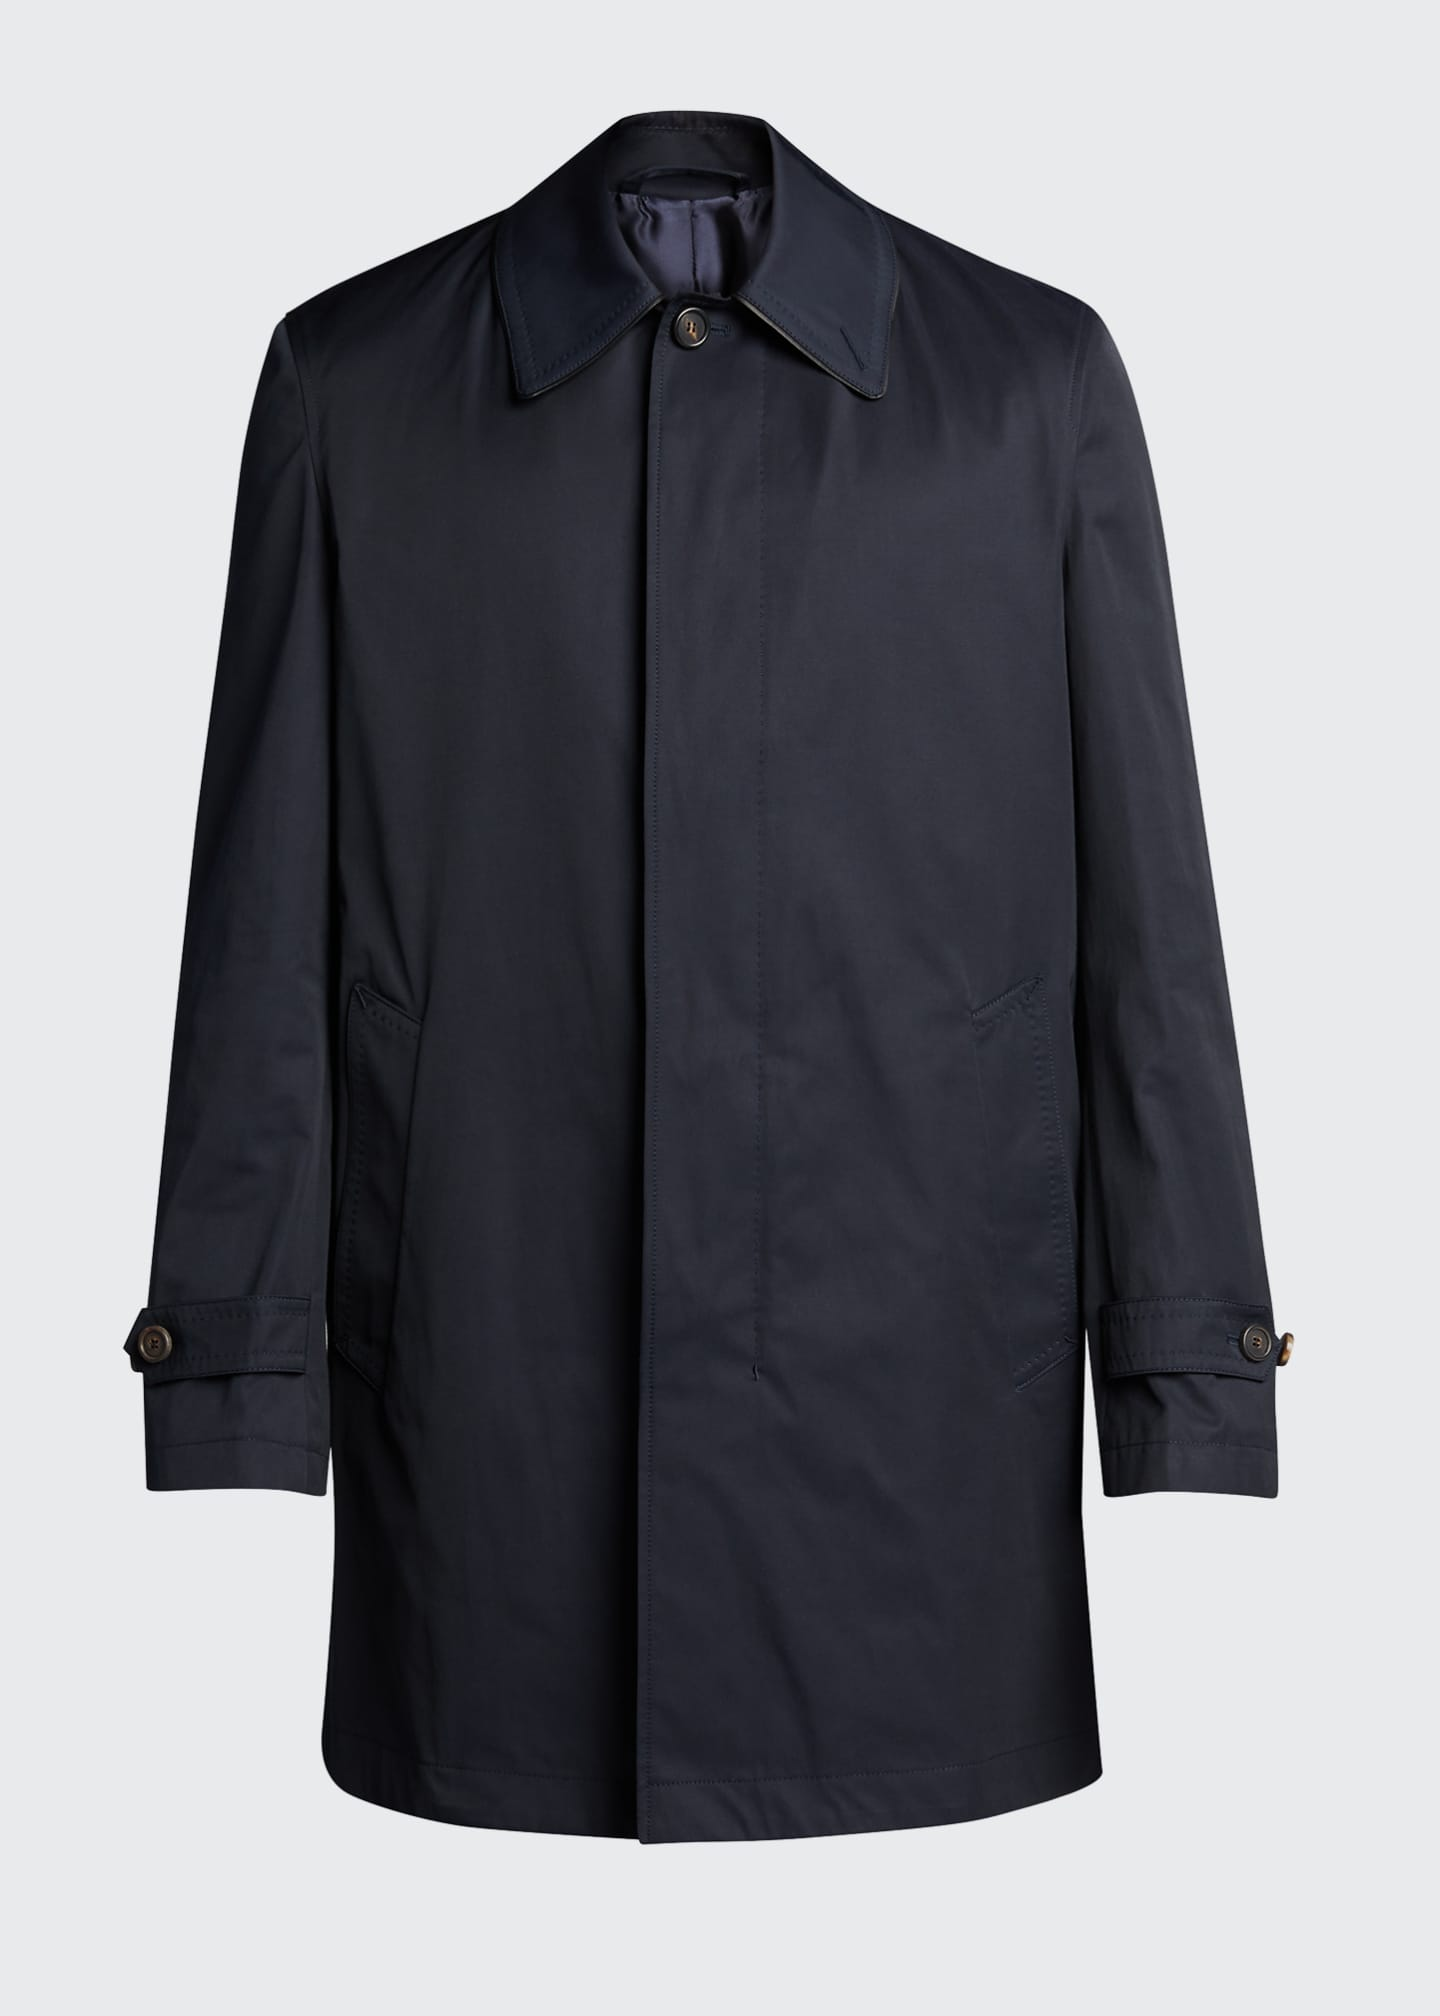 Image 5 of 5: Men's Trench Coat